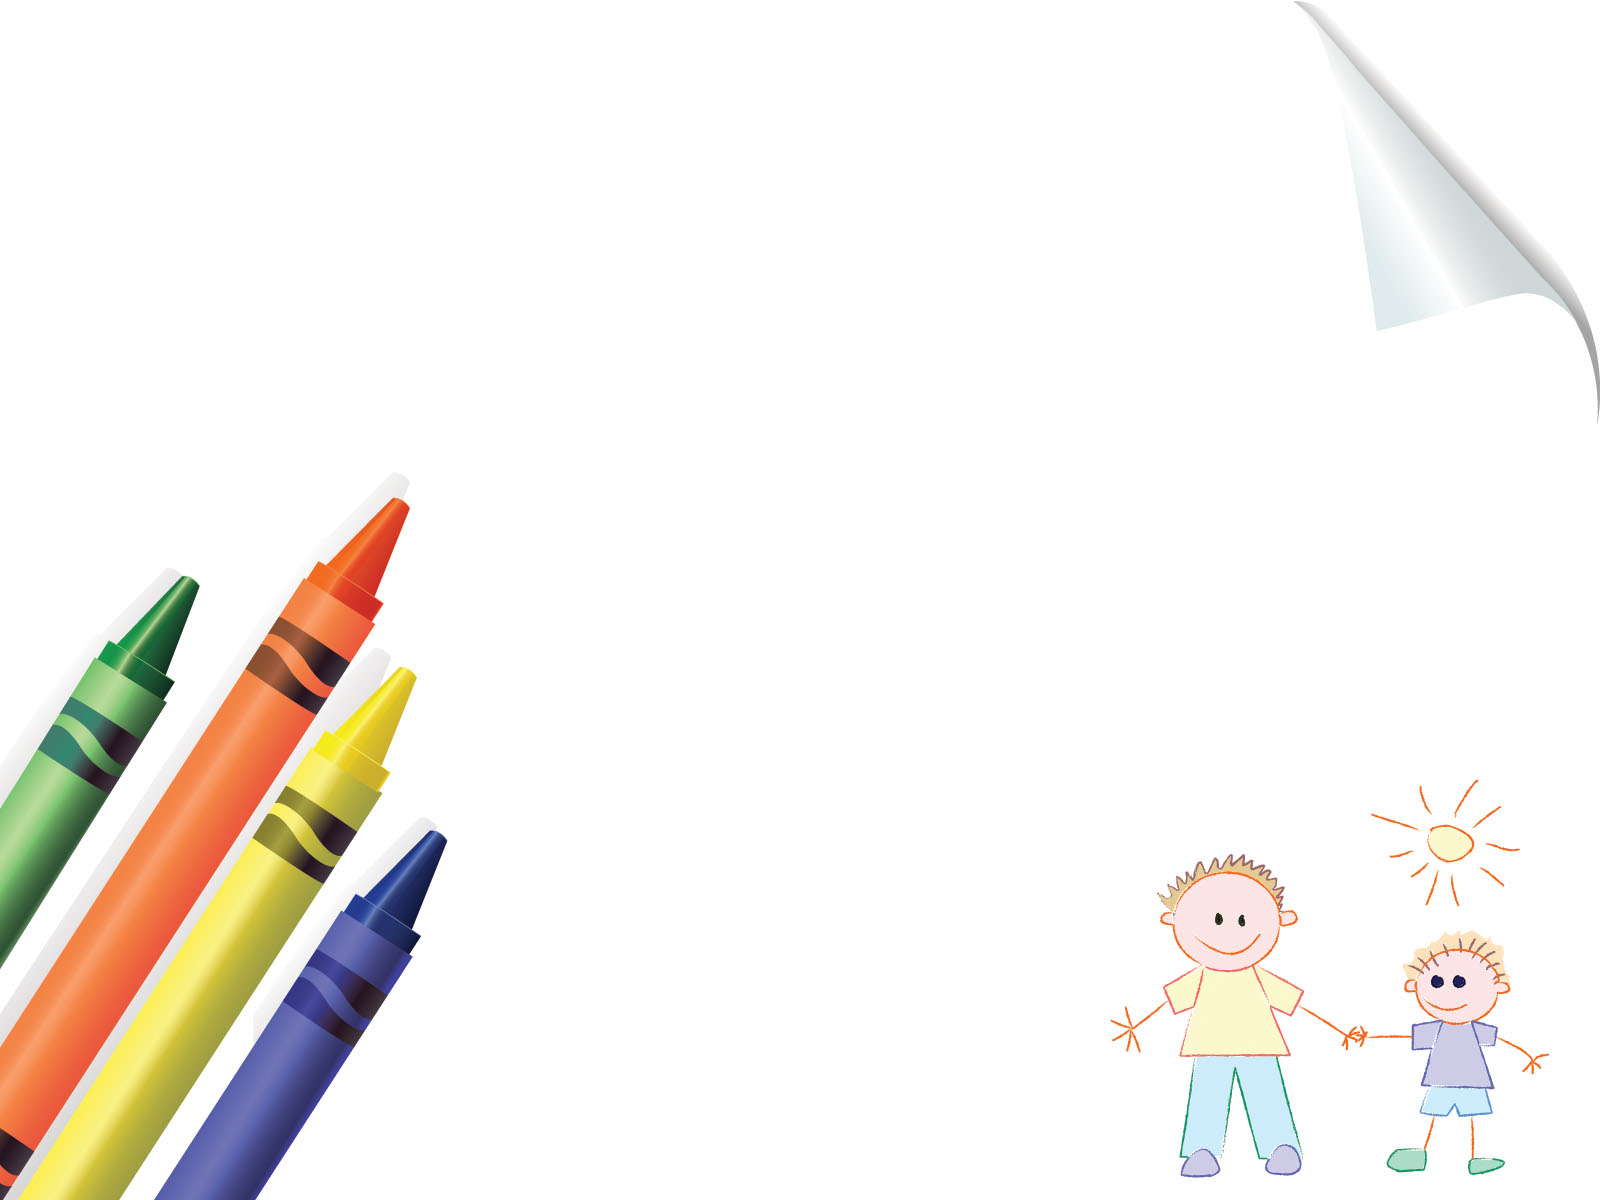 Download free for kids powerpoint templates for free presentation for kids powerpoint templates for free presentation frame ppt backgrounds toneelgroepblik Images